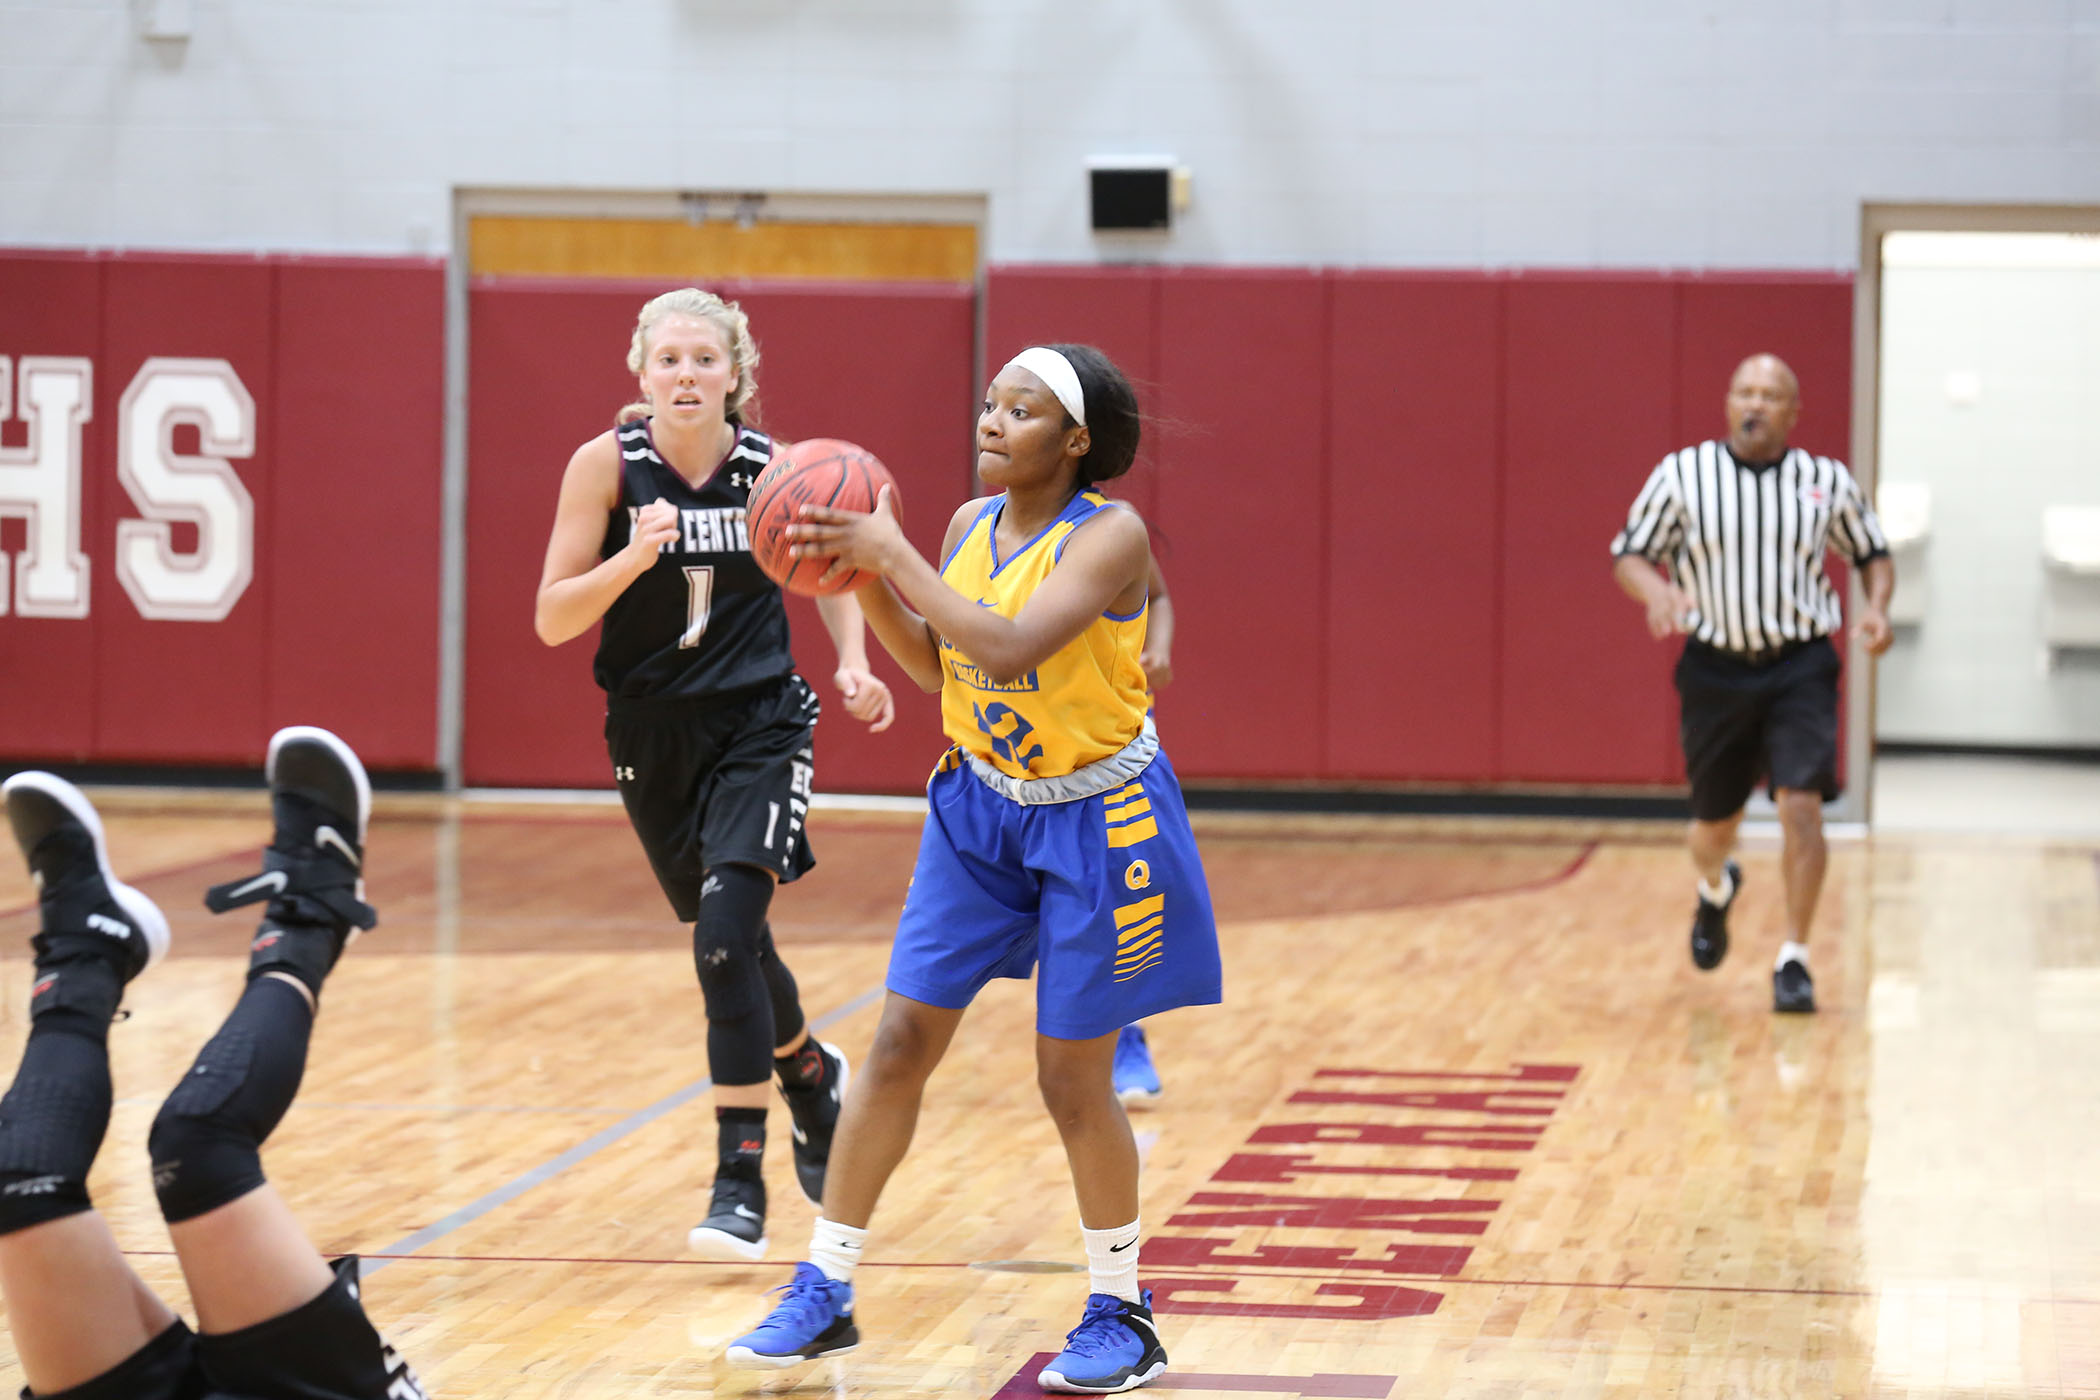 Raven plays for the Lady Panthers.